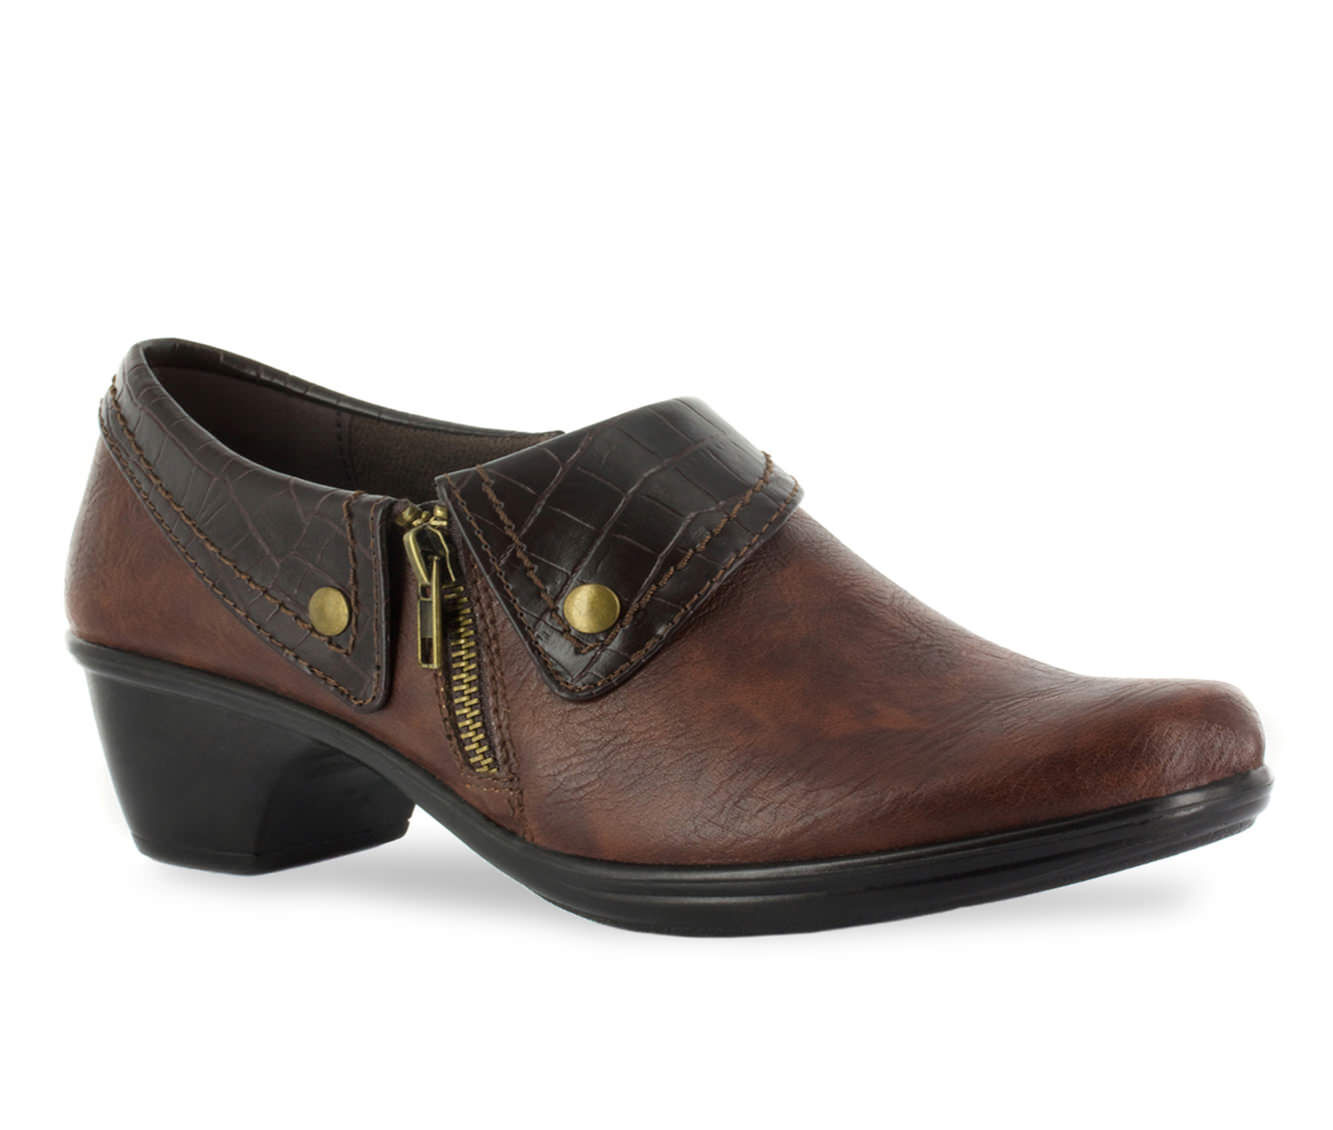 lowest price guarantee Women's Easy Street Darcy Shoes Tan/Br Croco